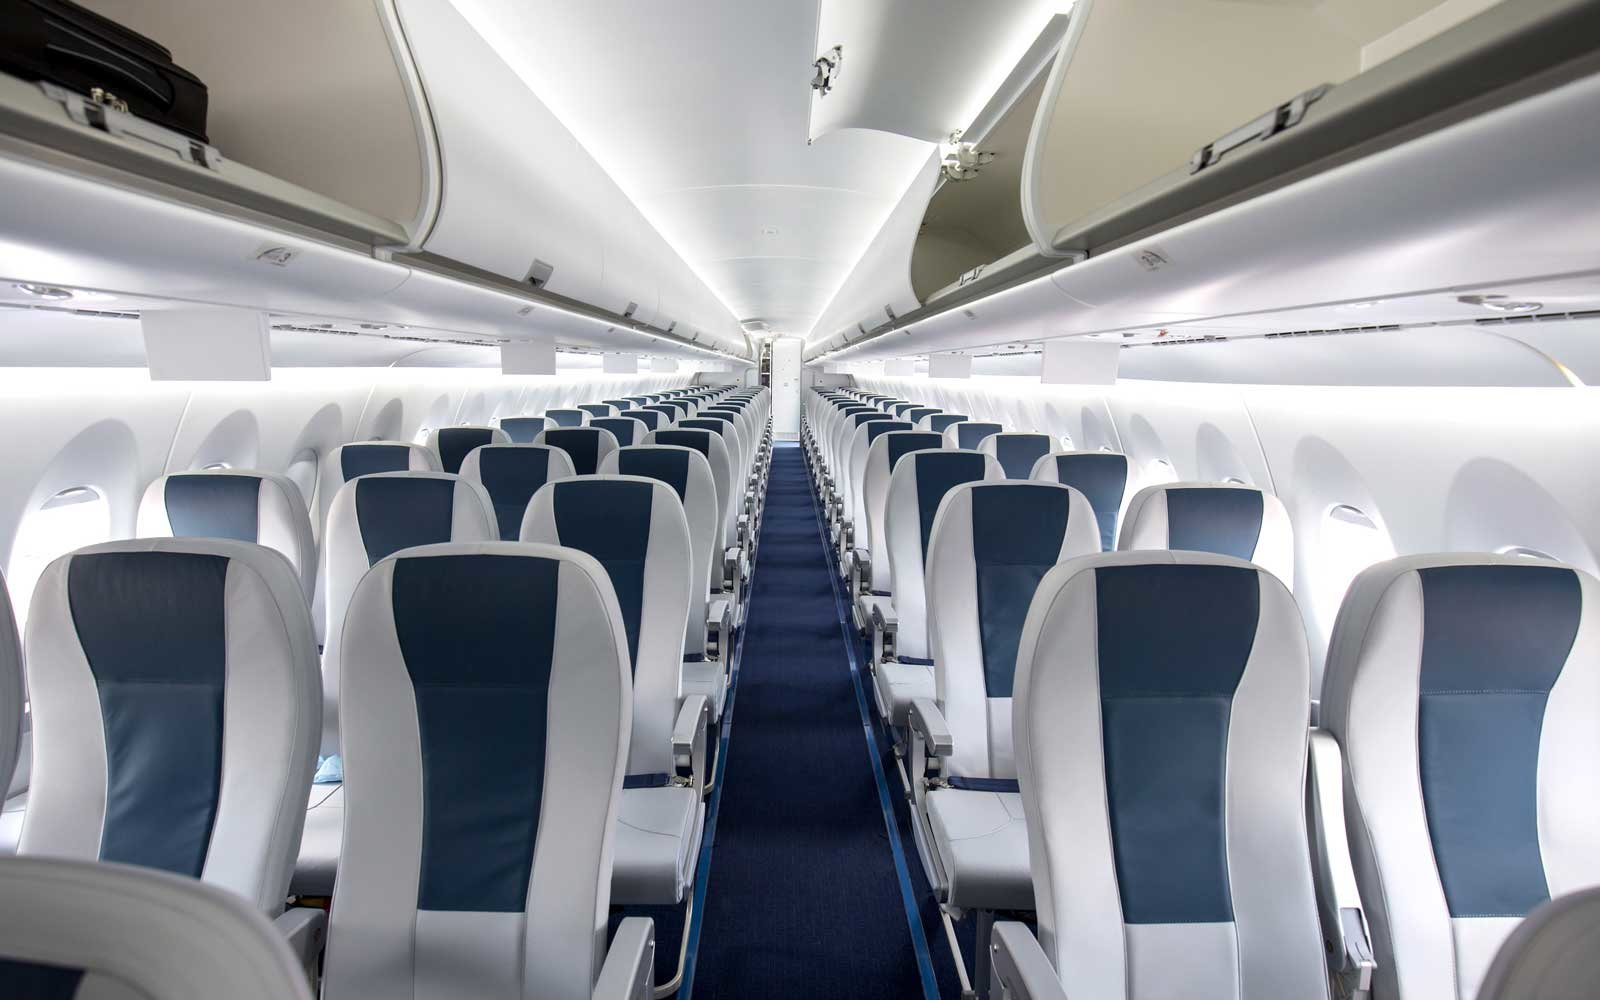 View of seats inside an airplane cabin